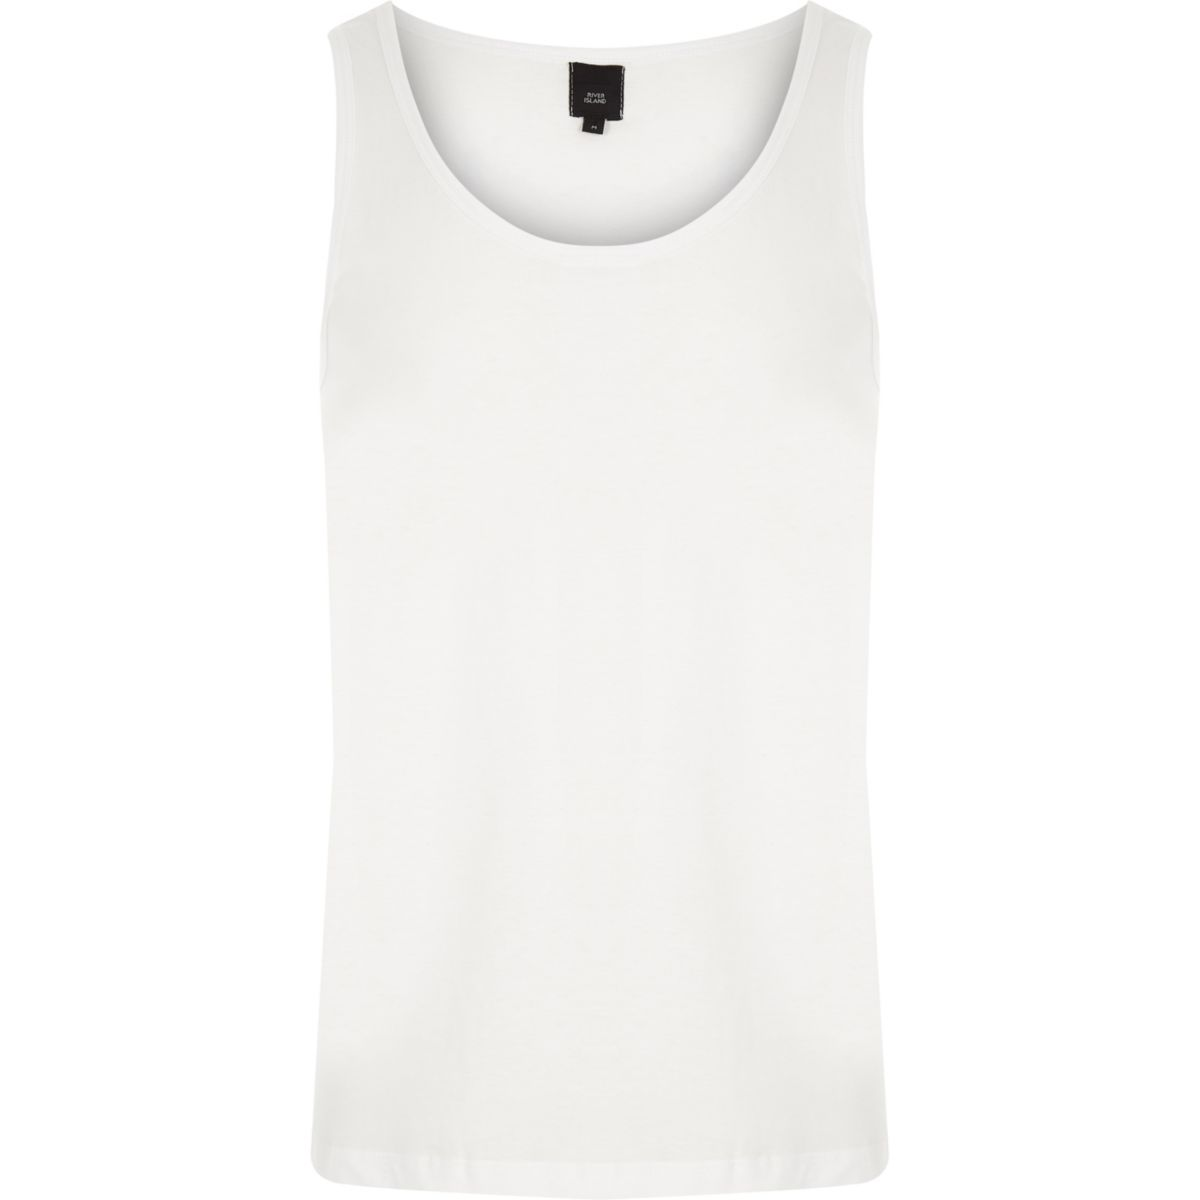 White scoop neck tank top